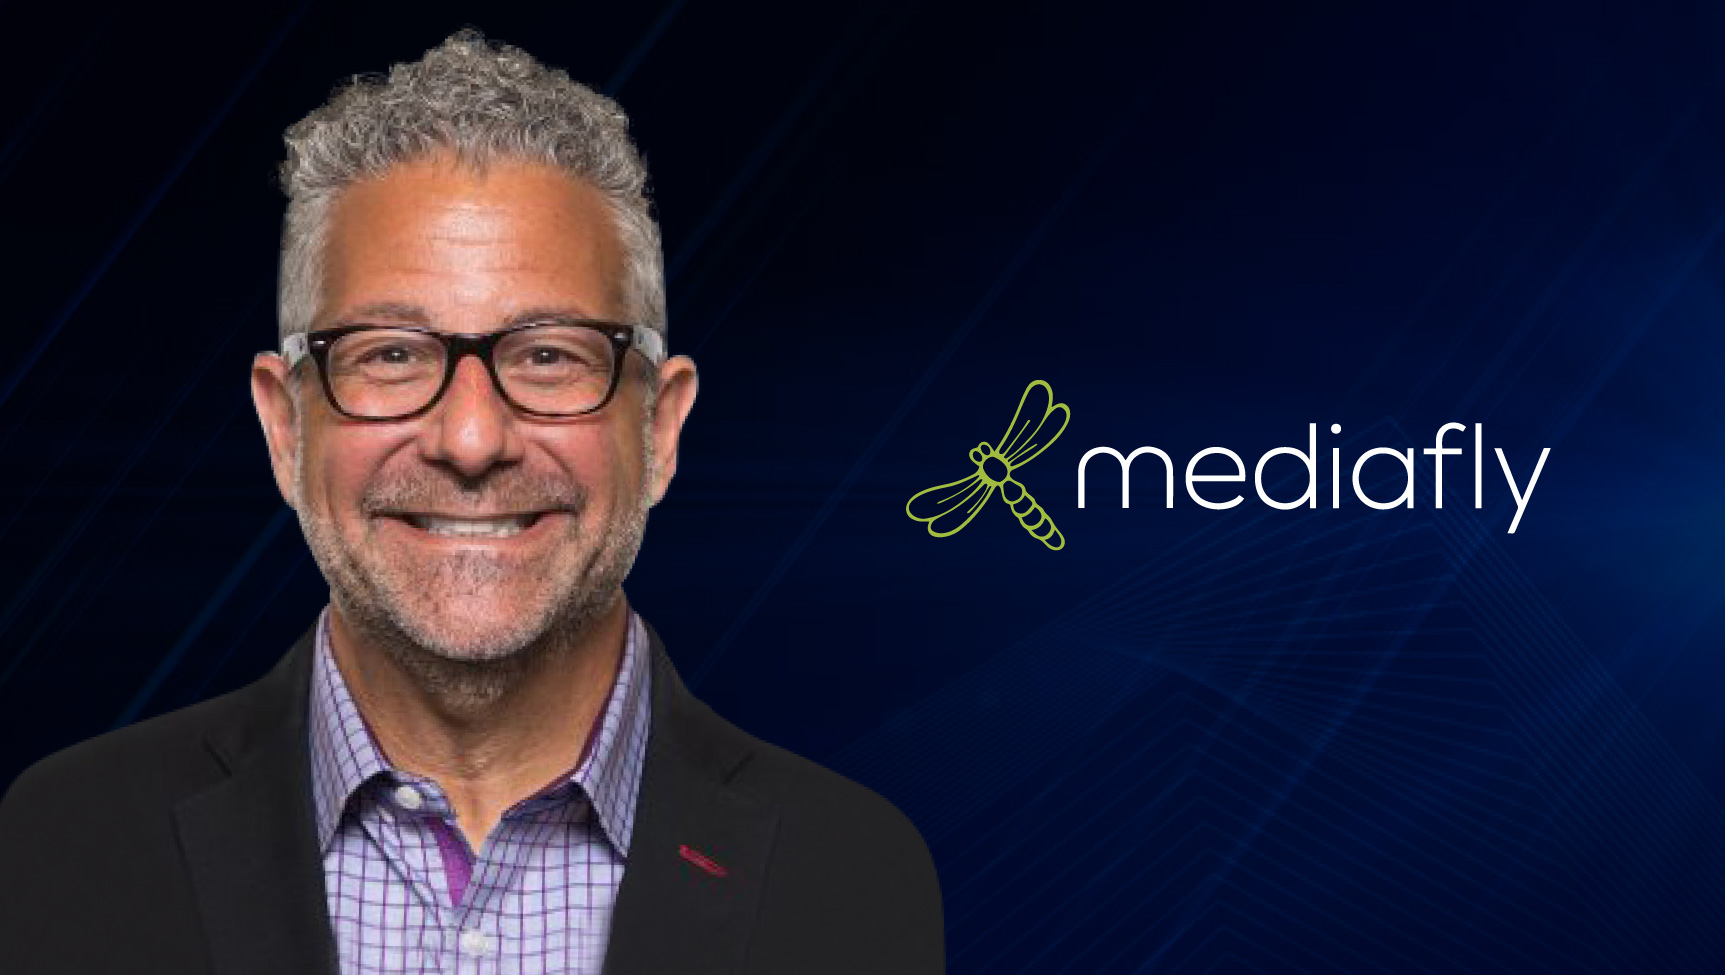 SalesTech Interview With Tom Pisello, Chief Evangelist at Mediafly